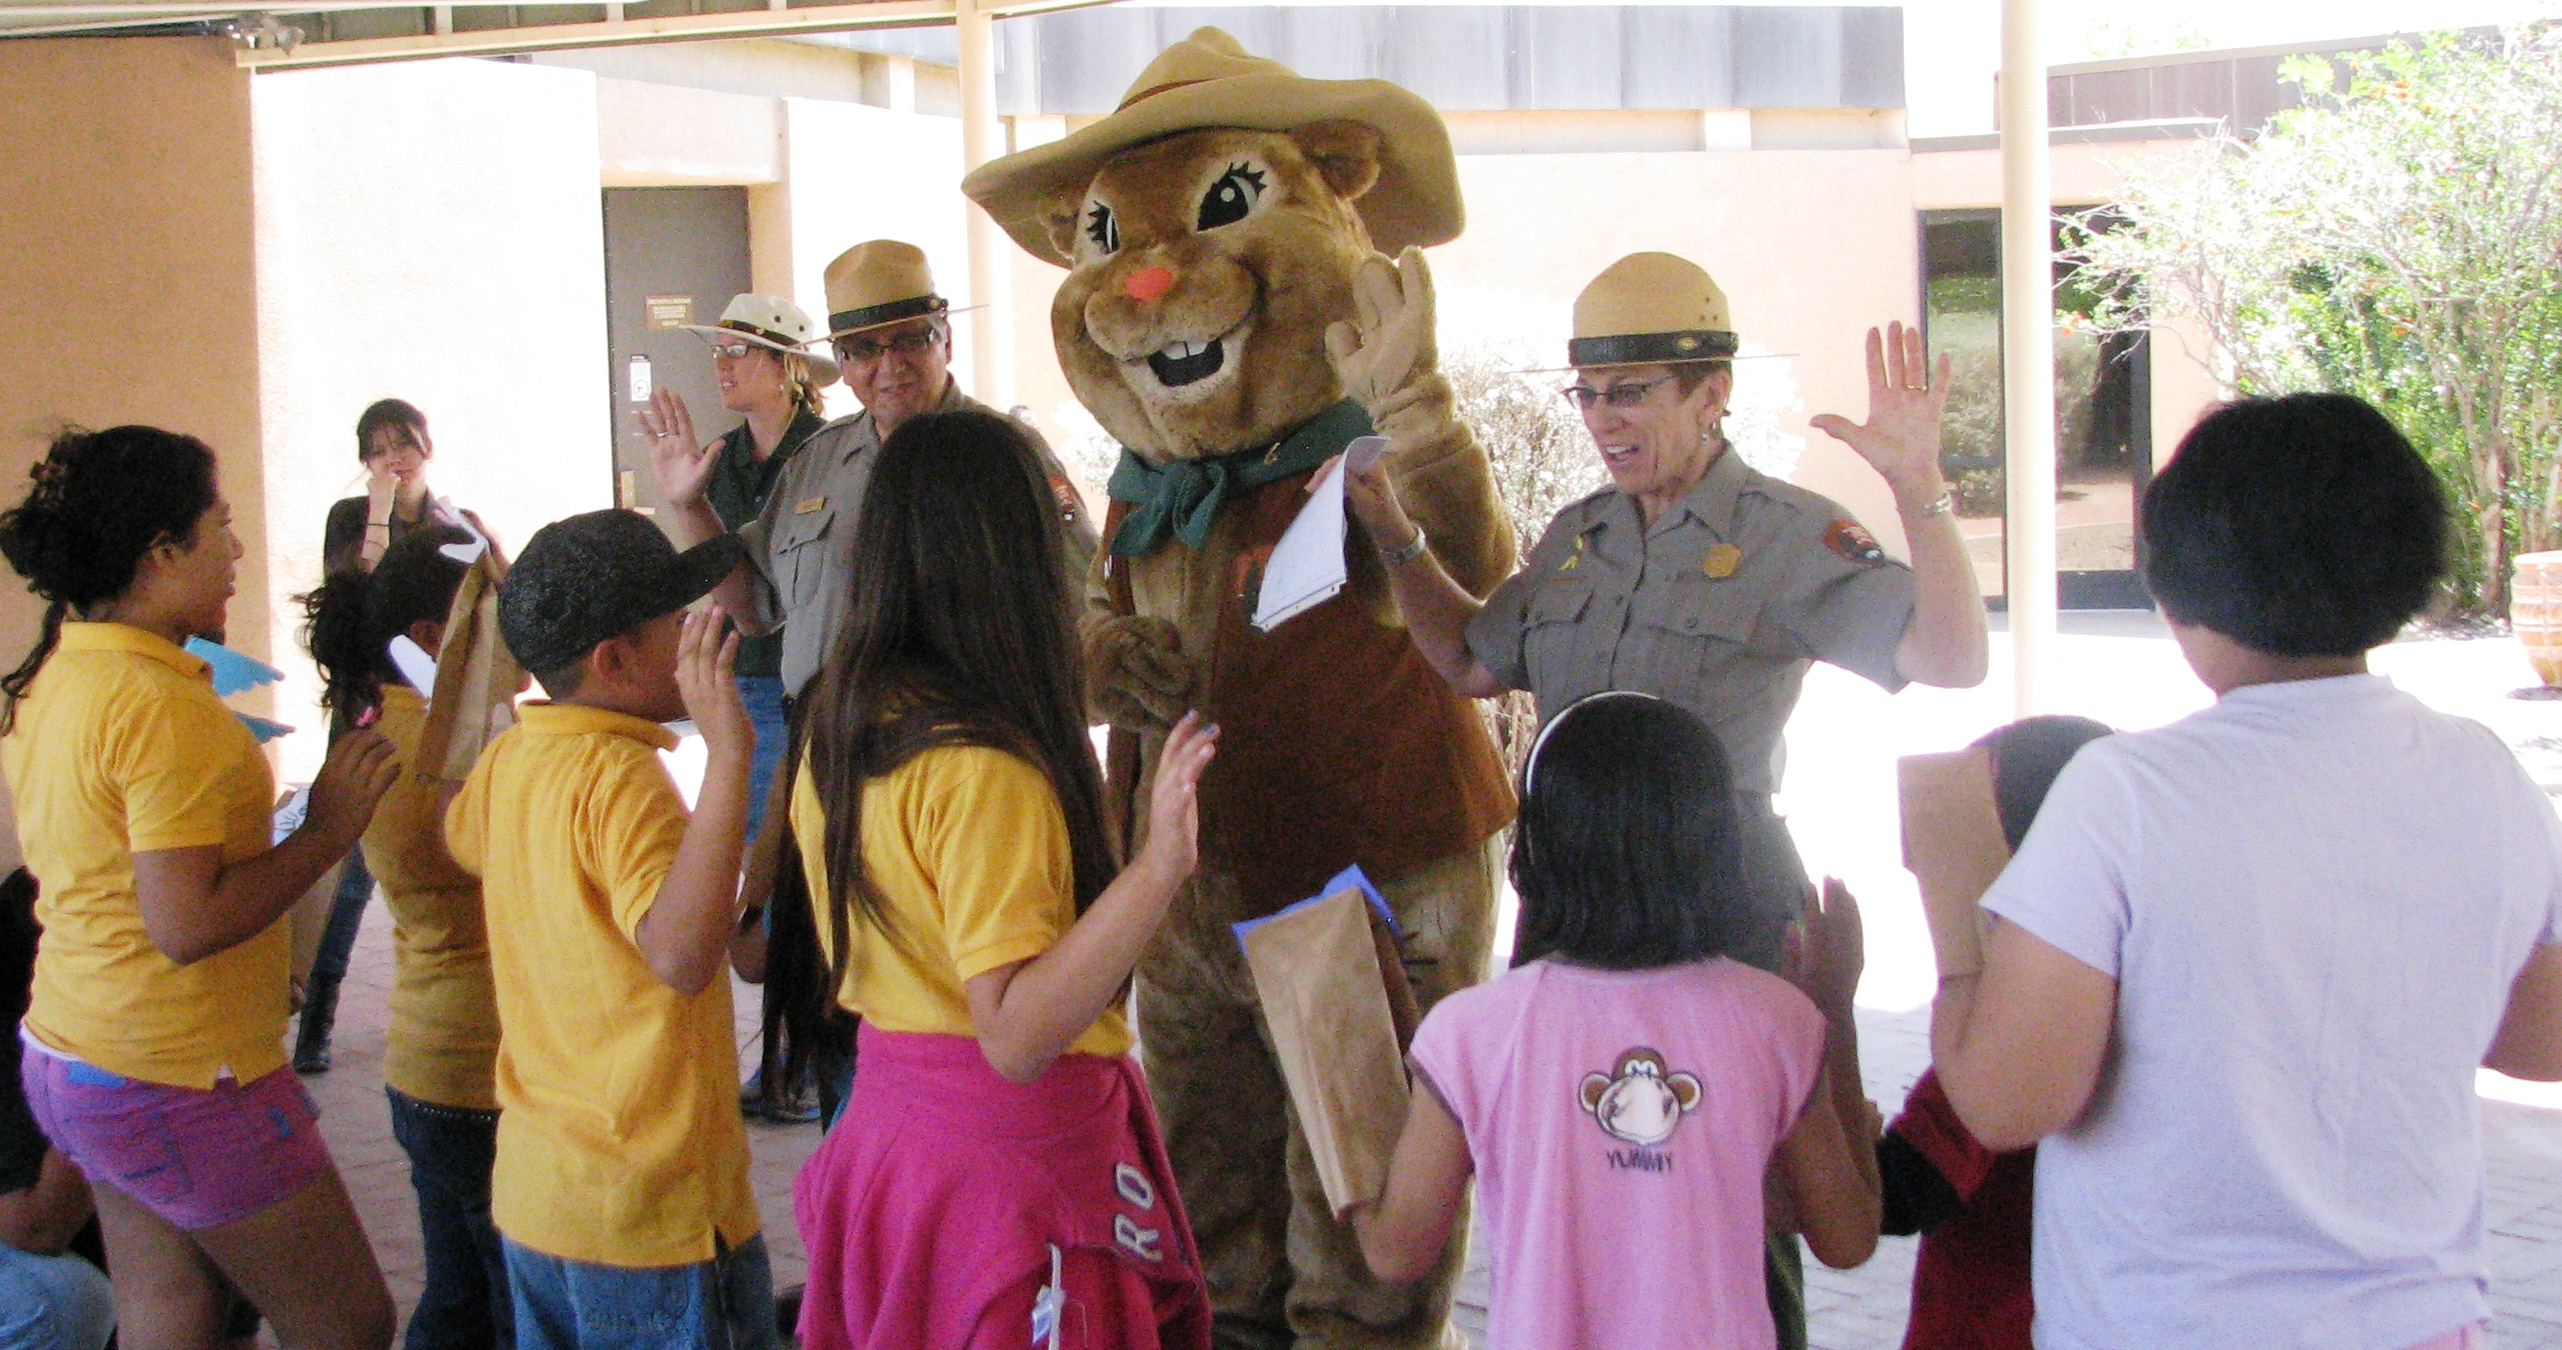 young people raising right hand to take Junior Ranger oath